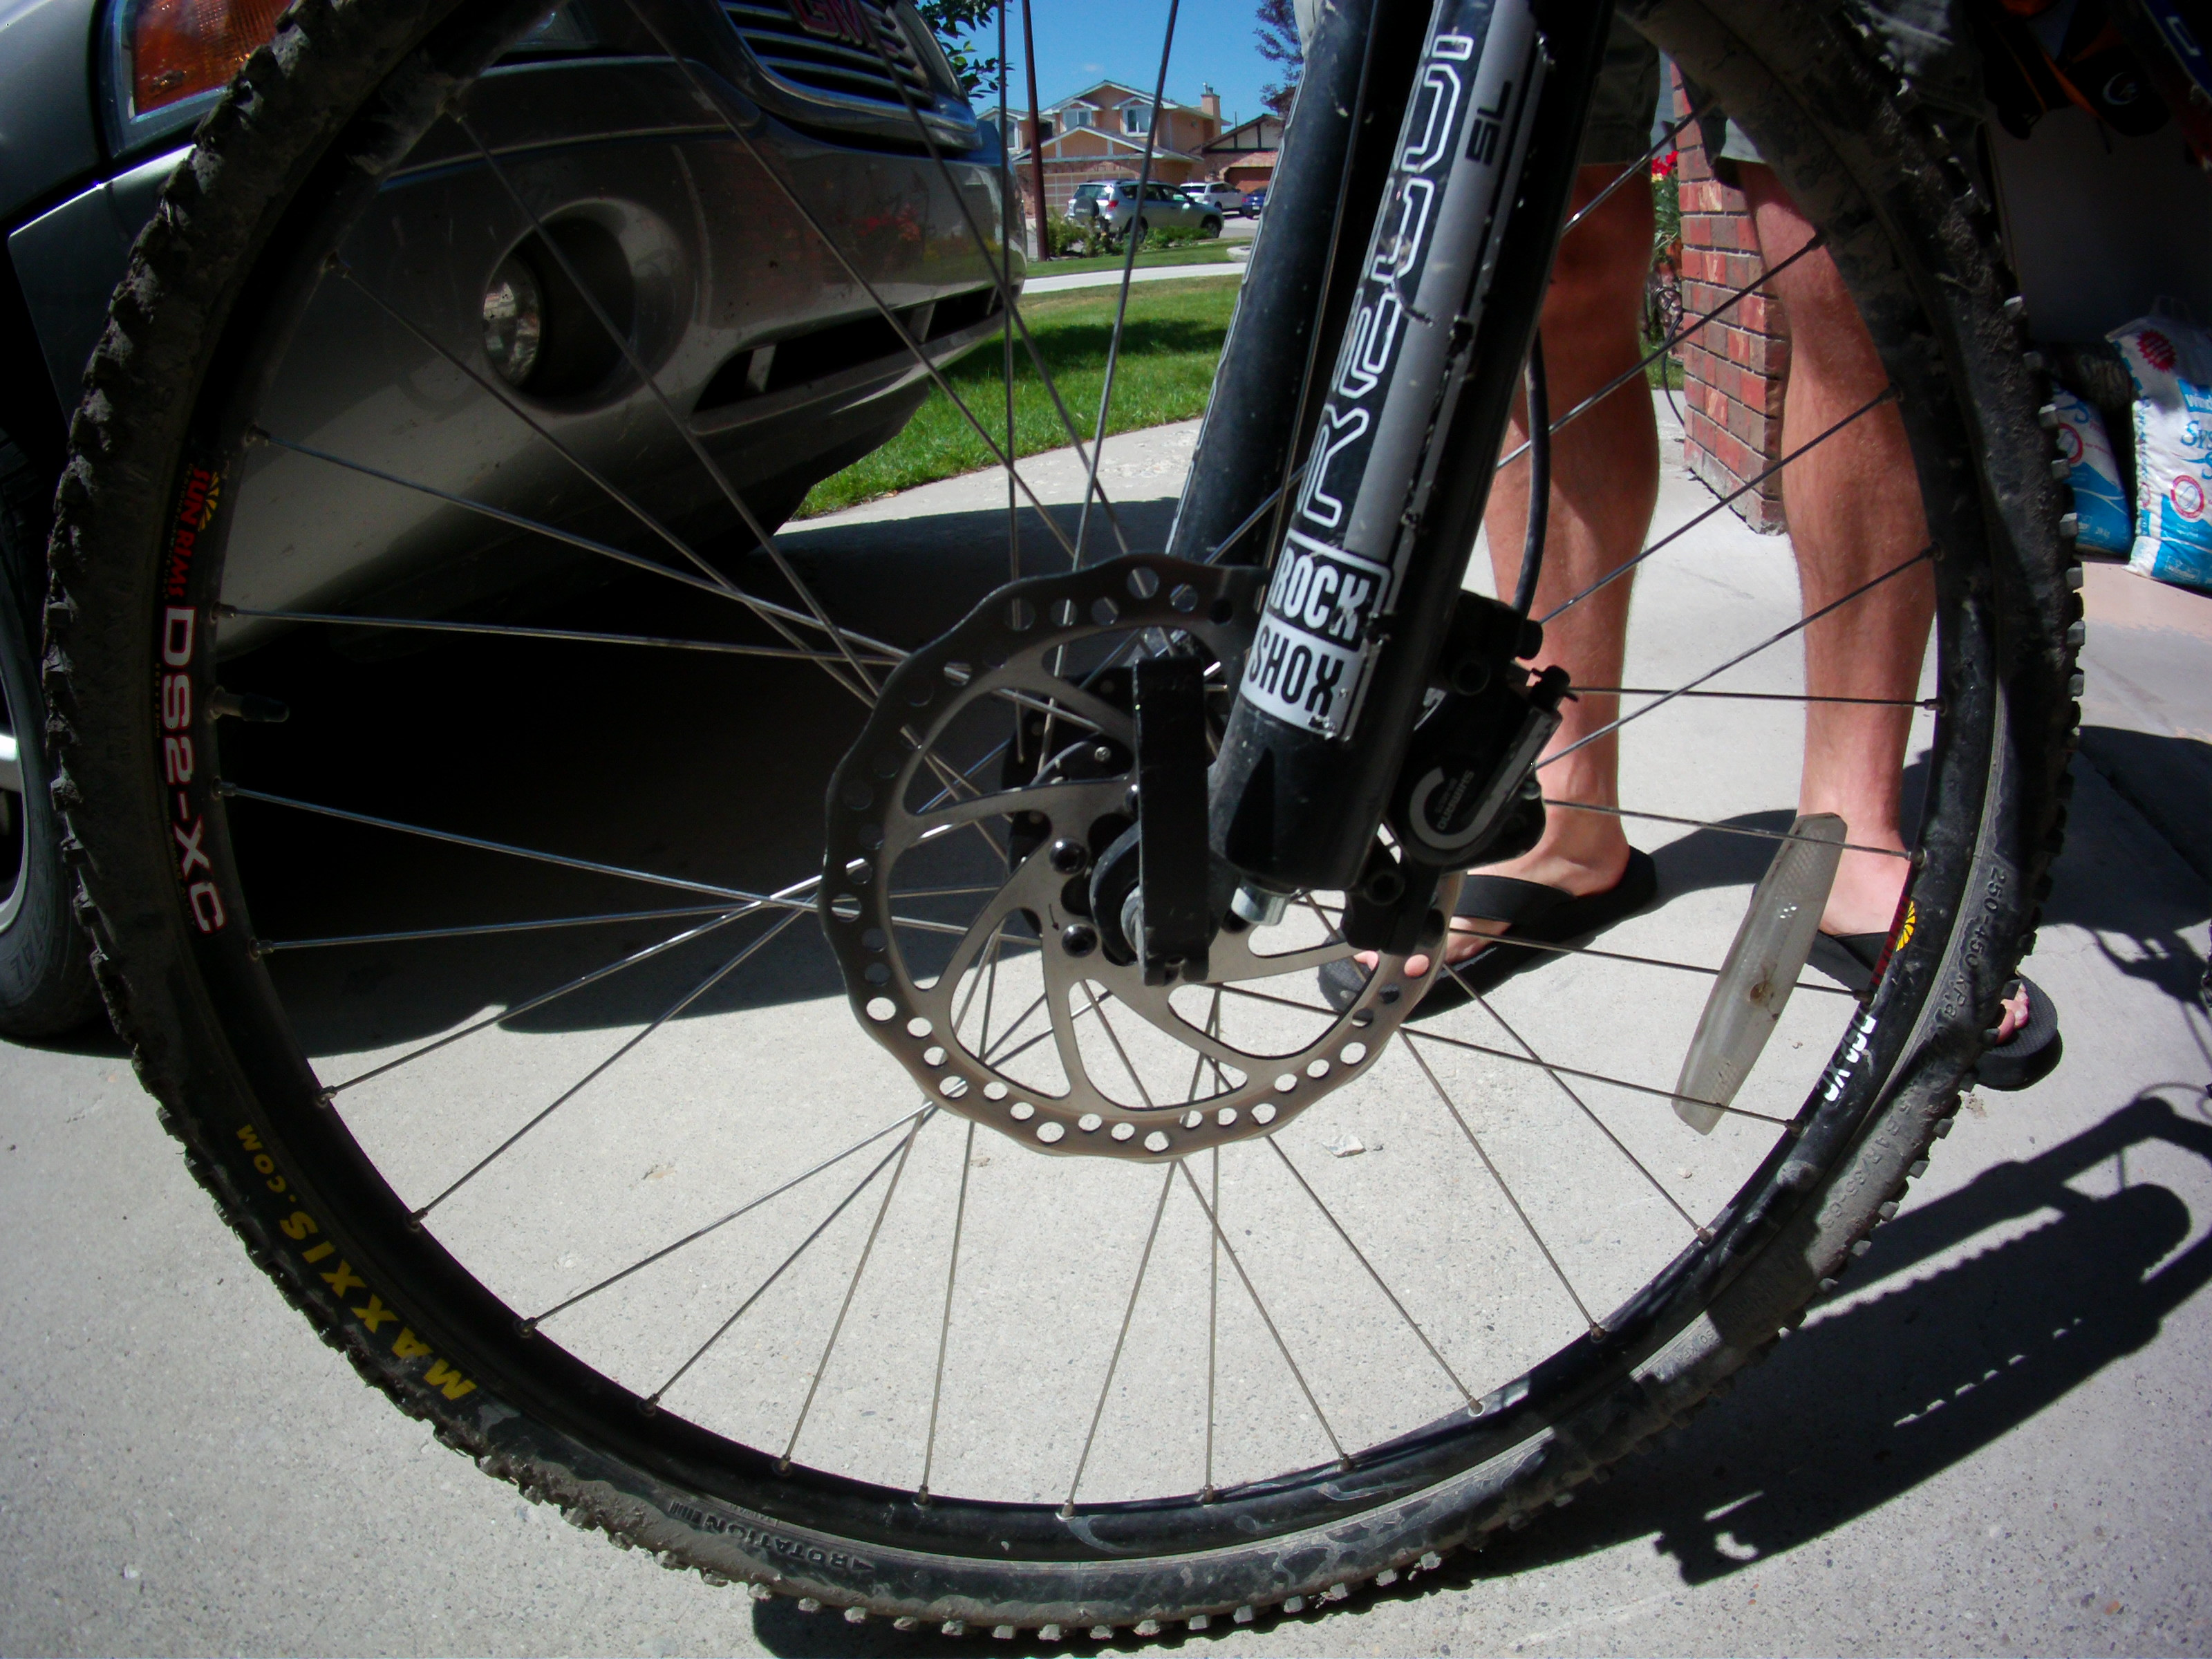 How To Change The Rotors On Disk Brakes